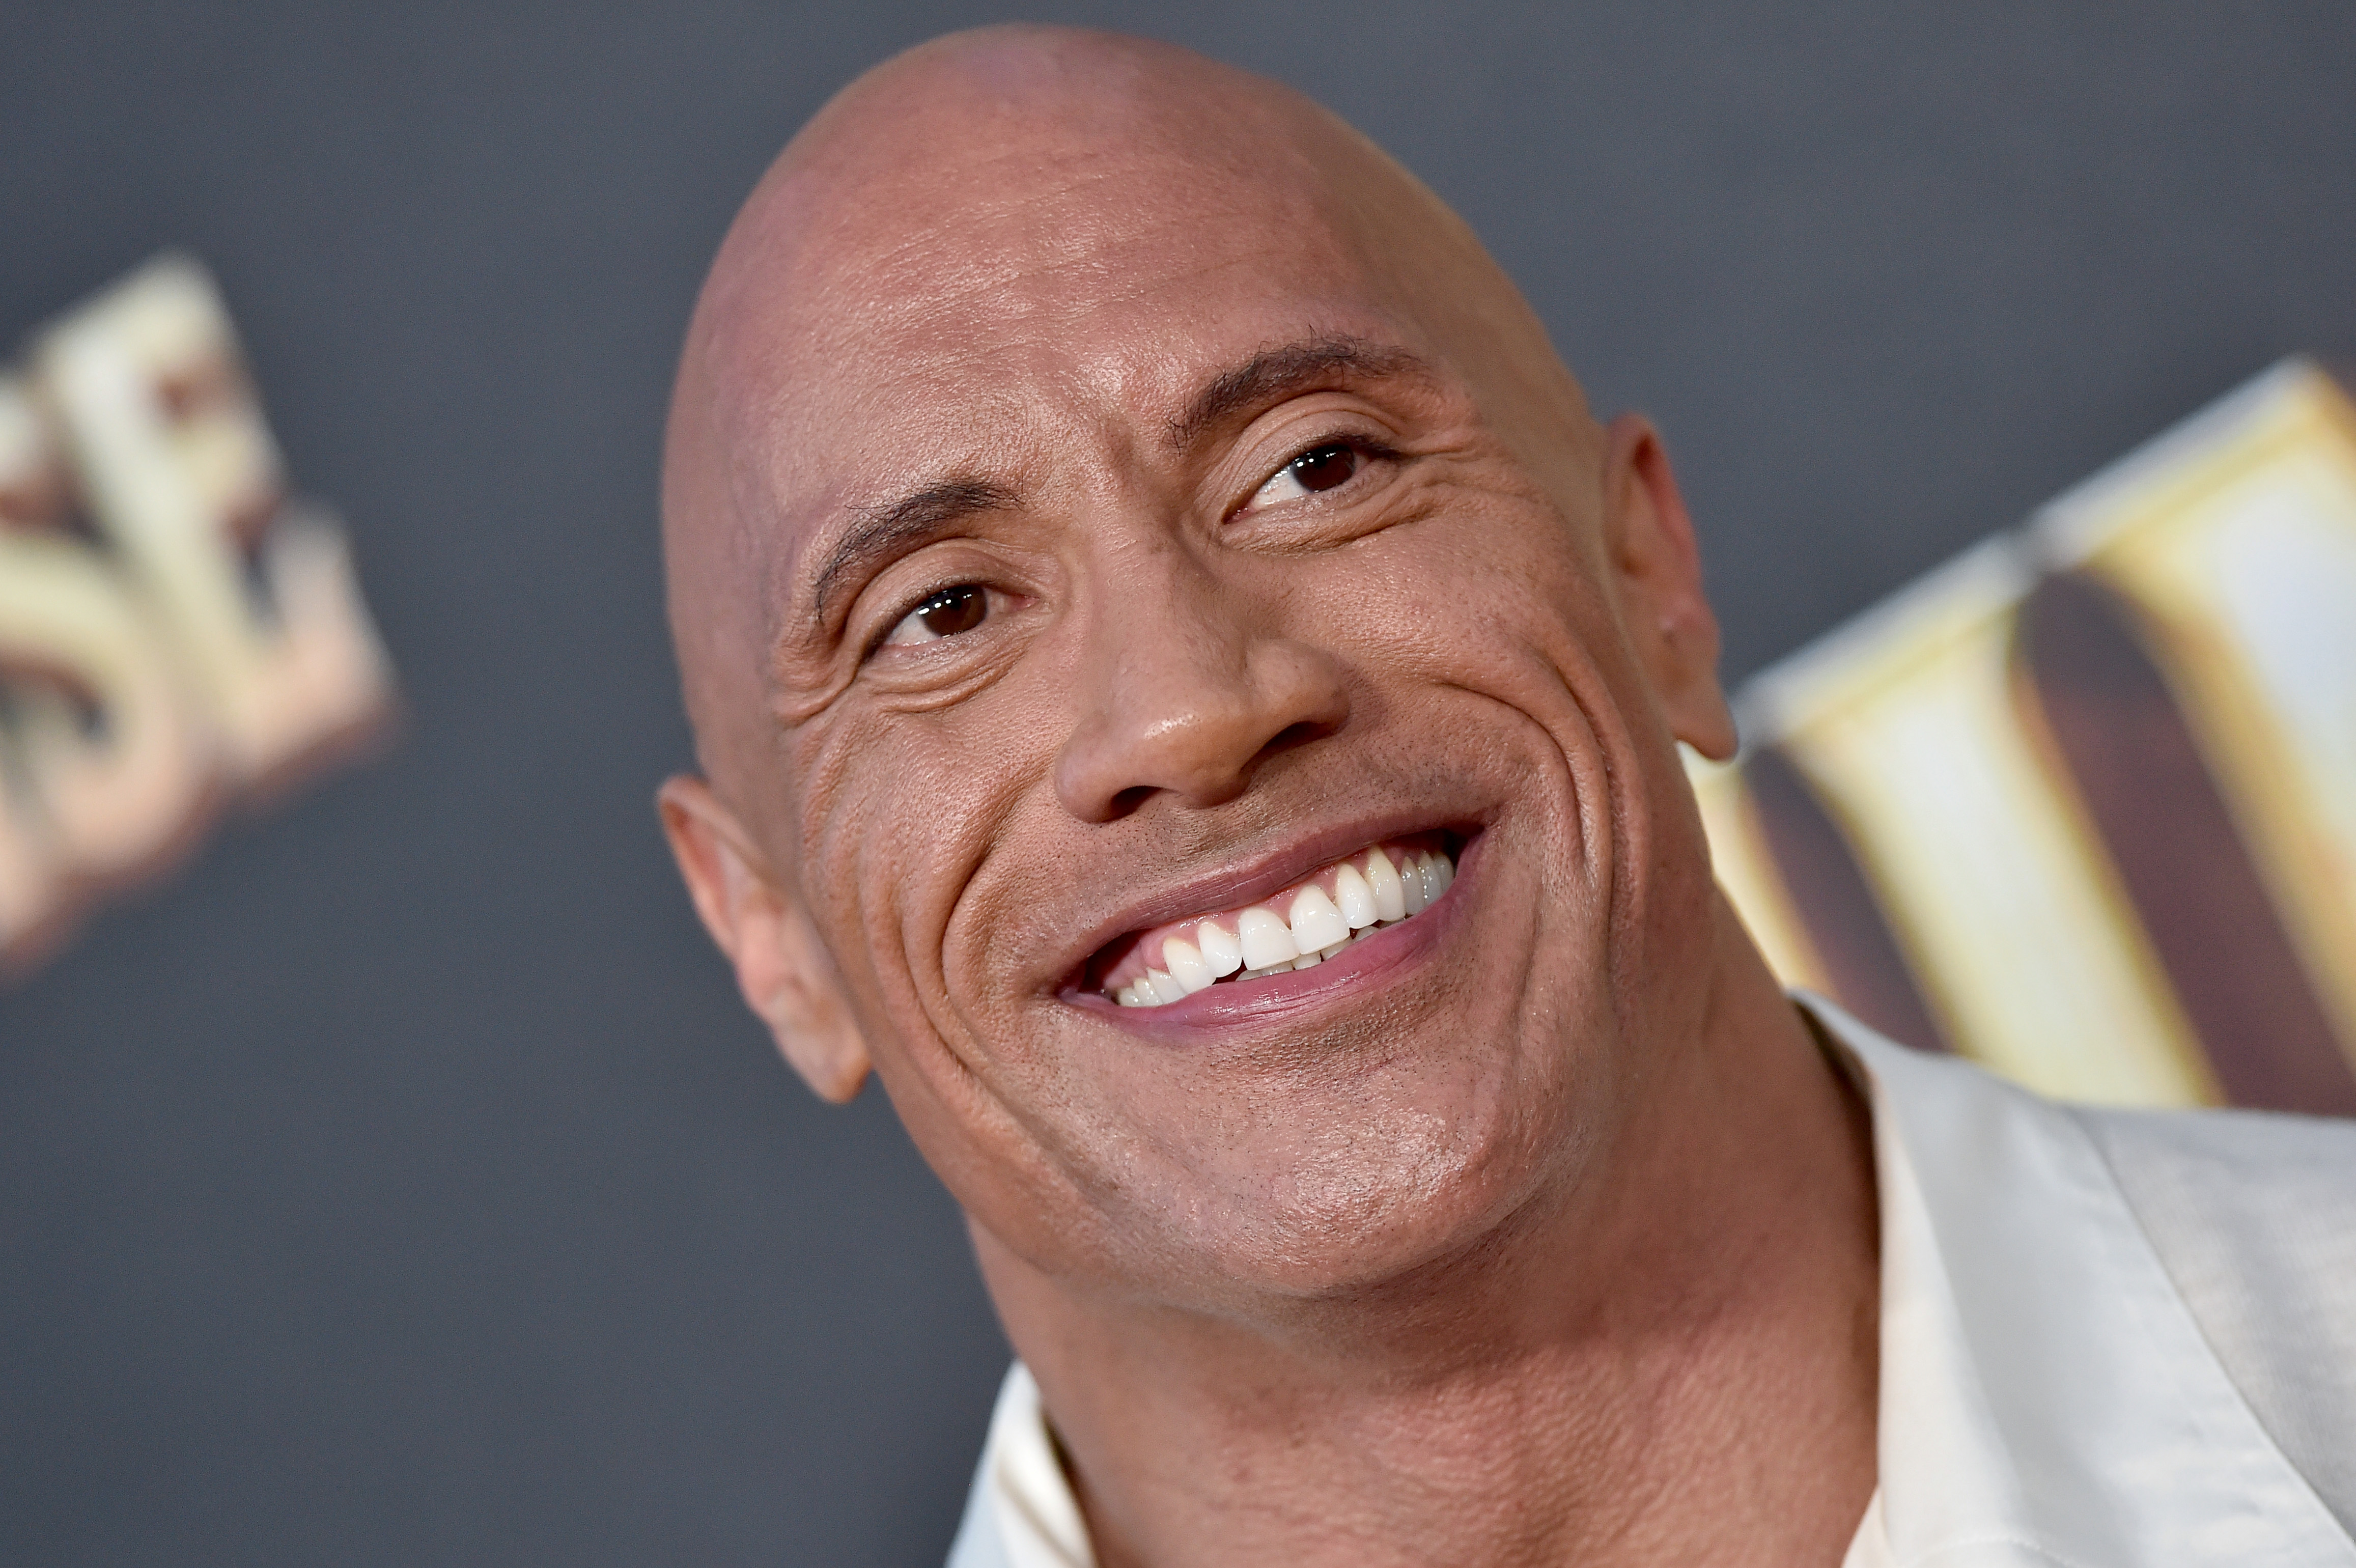 Dwayne Johnson reveals disturbing first look at Black Adam, says he was 'born to play' the DC anti-hero